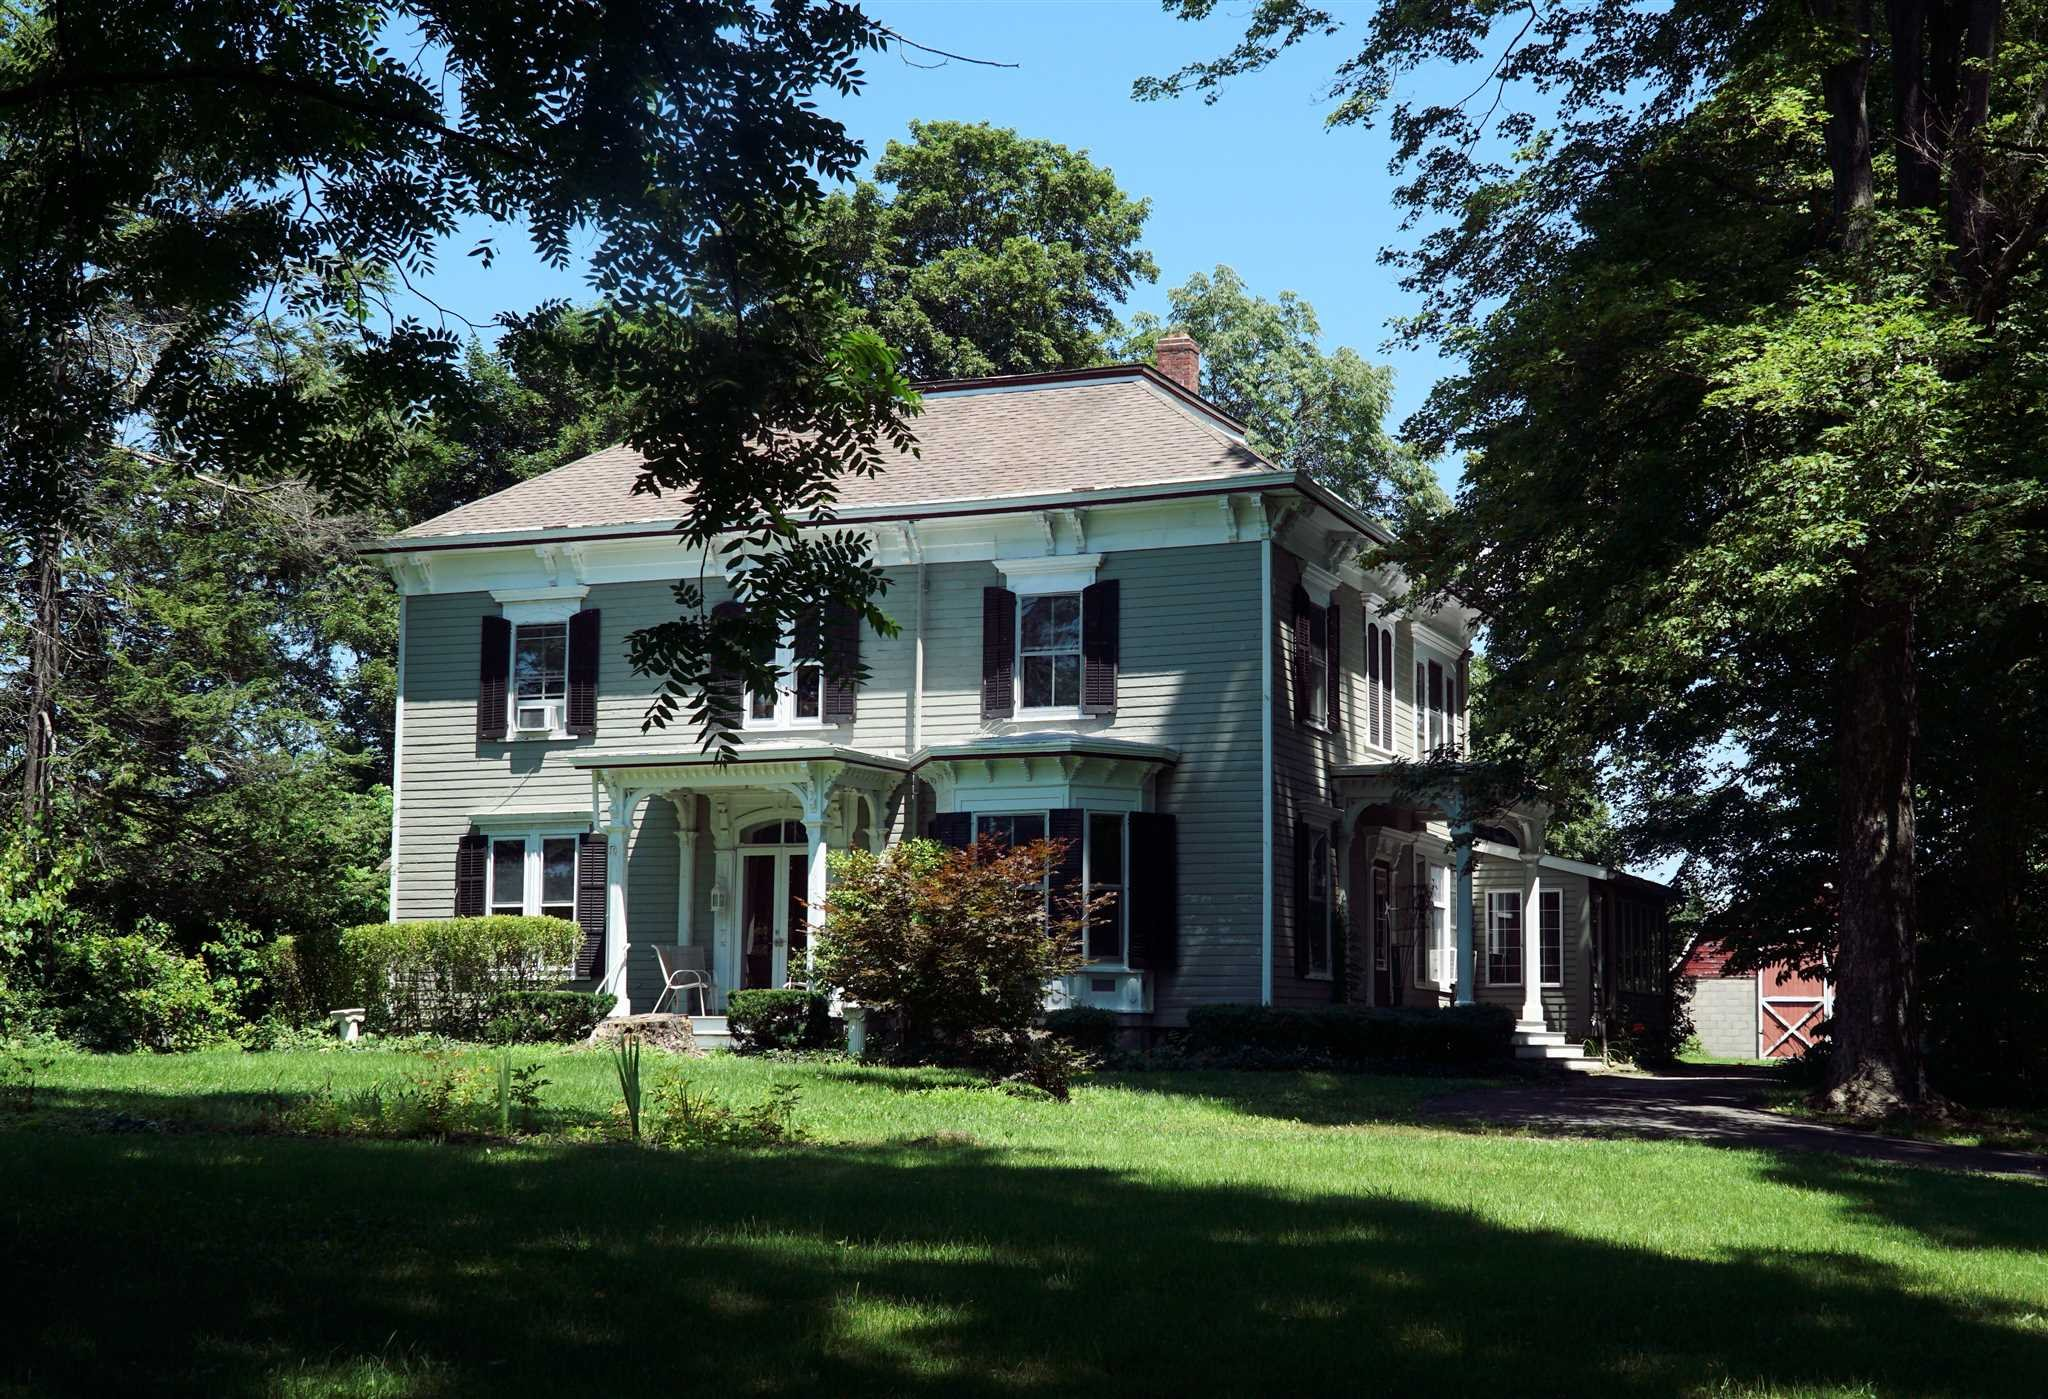 Single Family Home for Sale at 781 ROUTE 308 781 ROUTE 308 Rhinebeck, New York 12572 United States